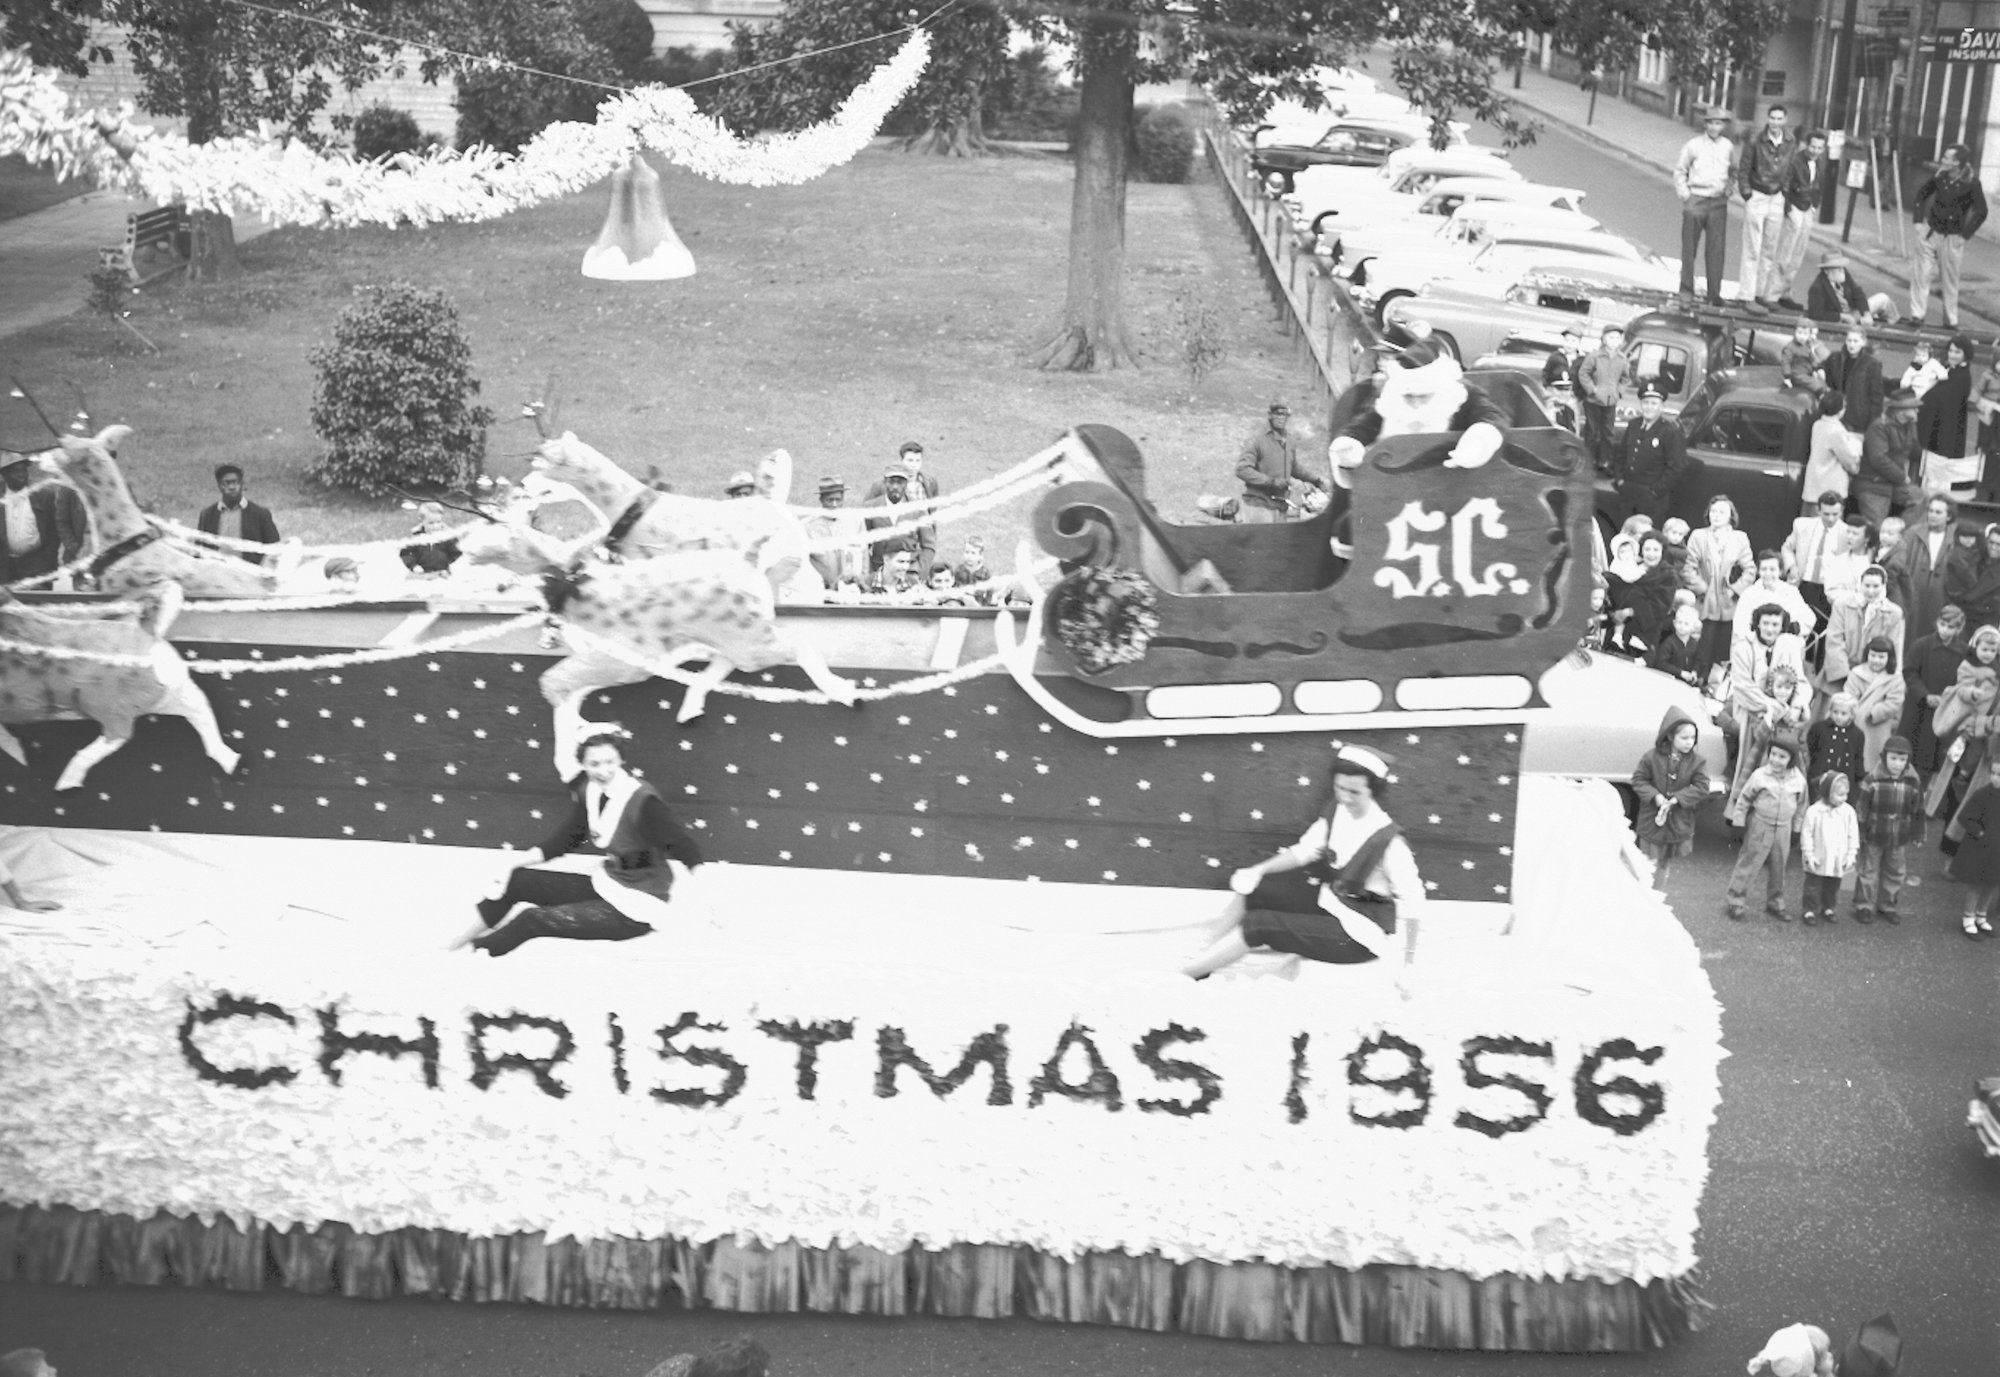 A handmade sleigh transported Santa to Sumter in 1956.